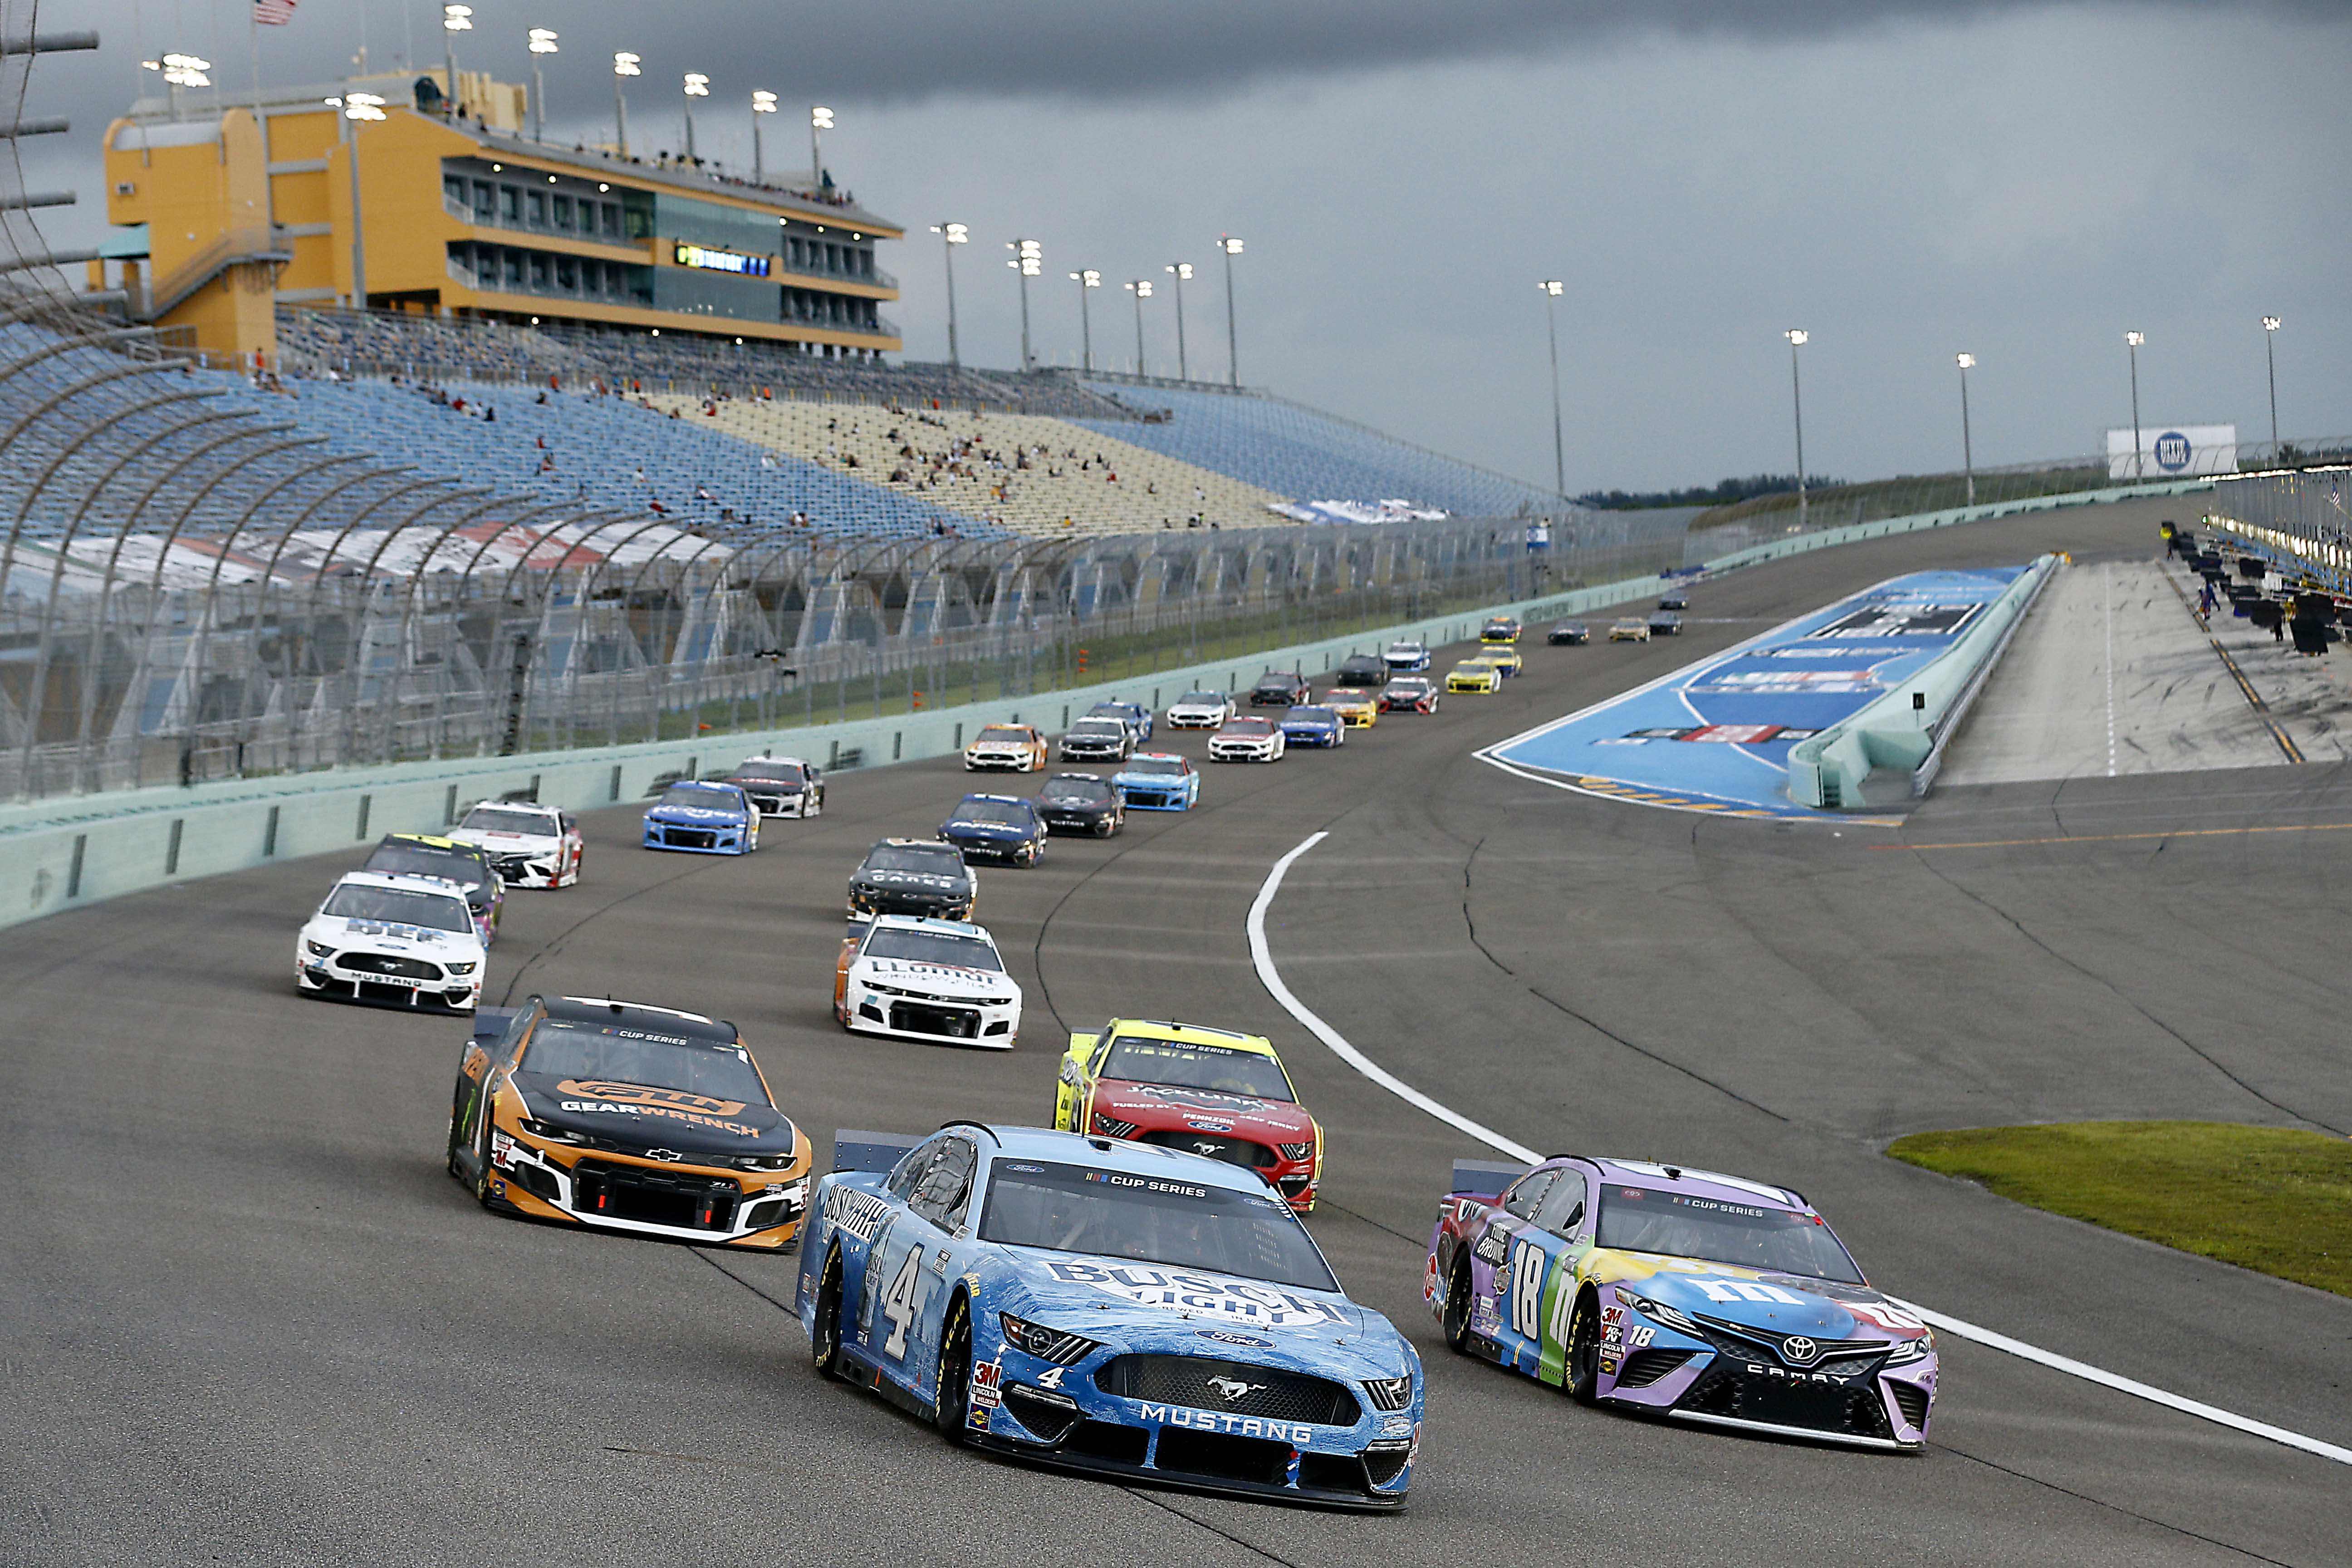 Kevin Harvick and Kyle Busch at Homestead-Miami Speedway - NASCAR Cup Series